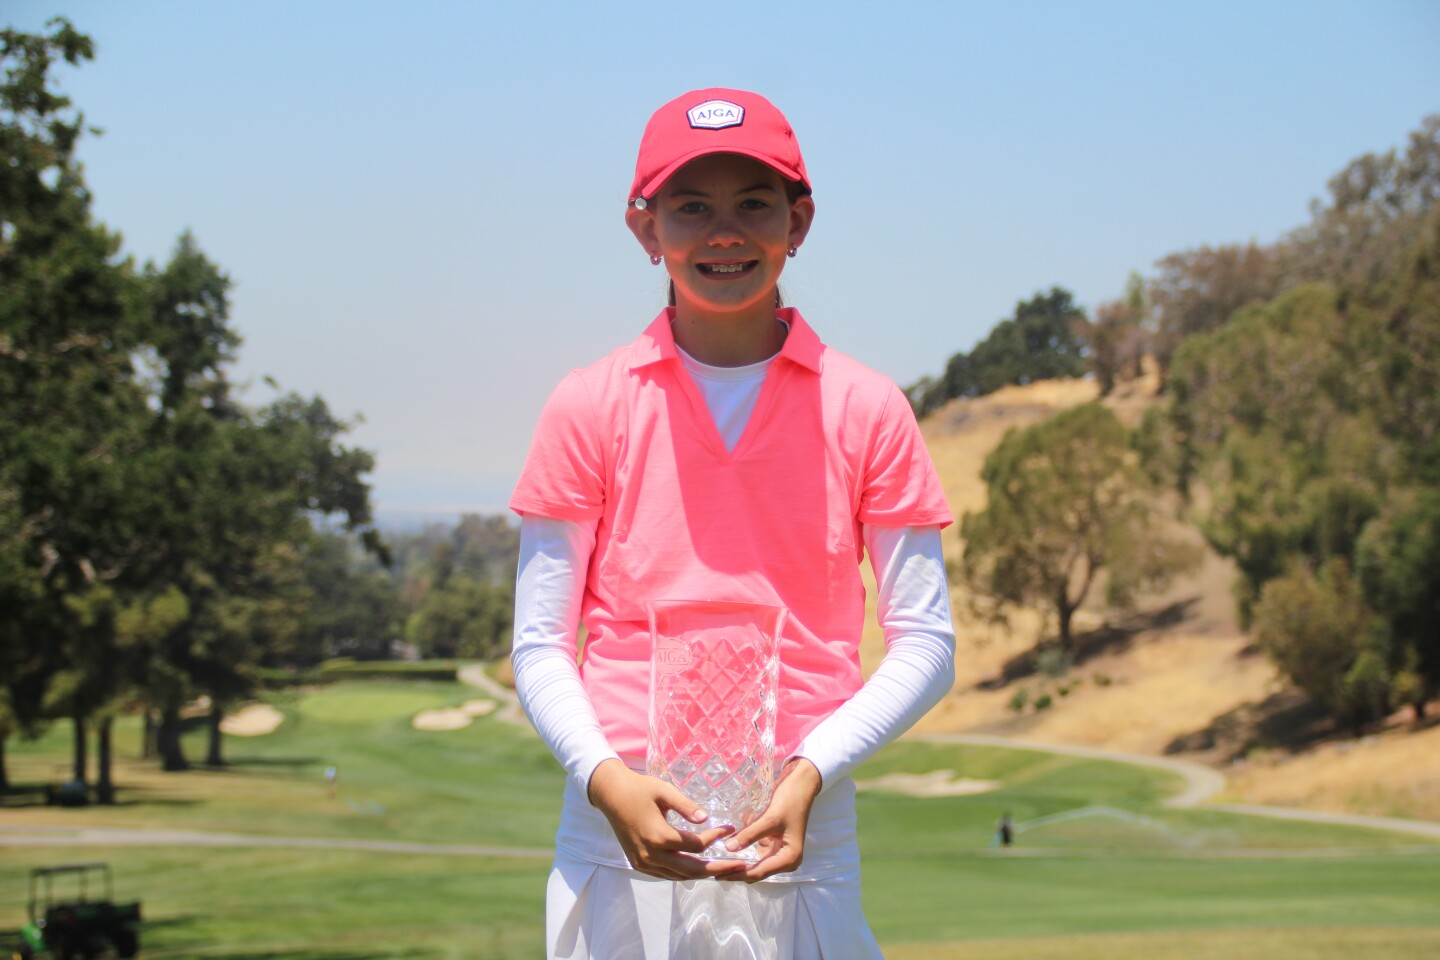 Asterisk Talley Girls Division Champion-AJGA Junior at San Jose Presented by Live View Sports-2021.JPG